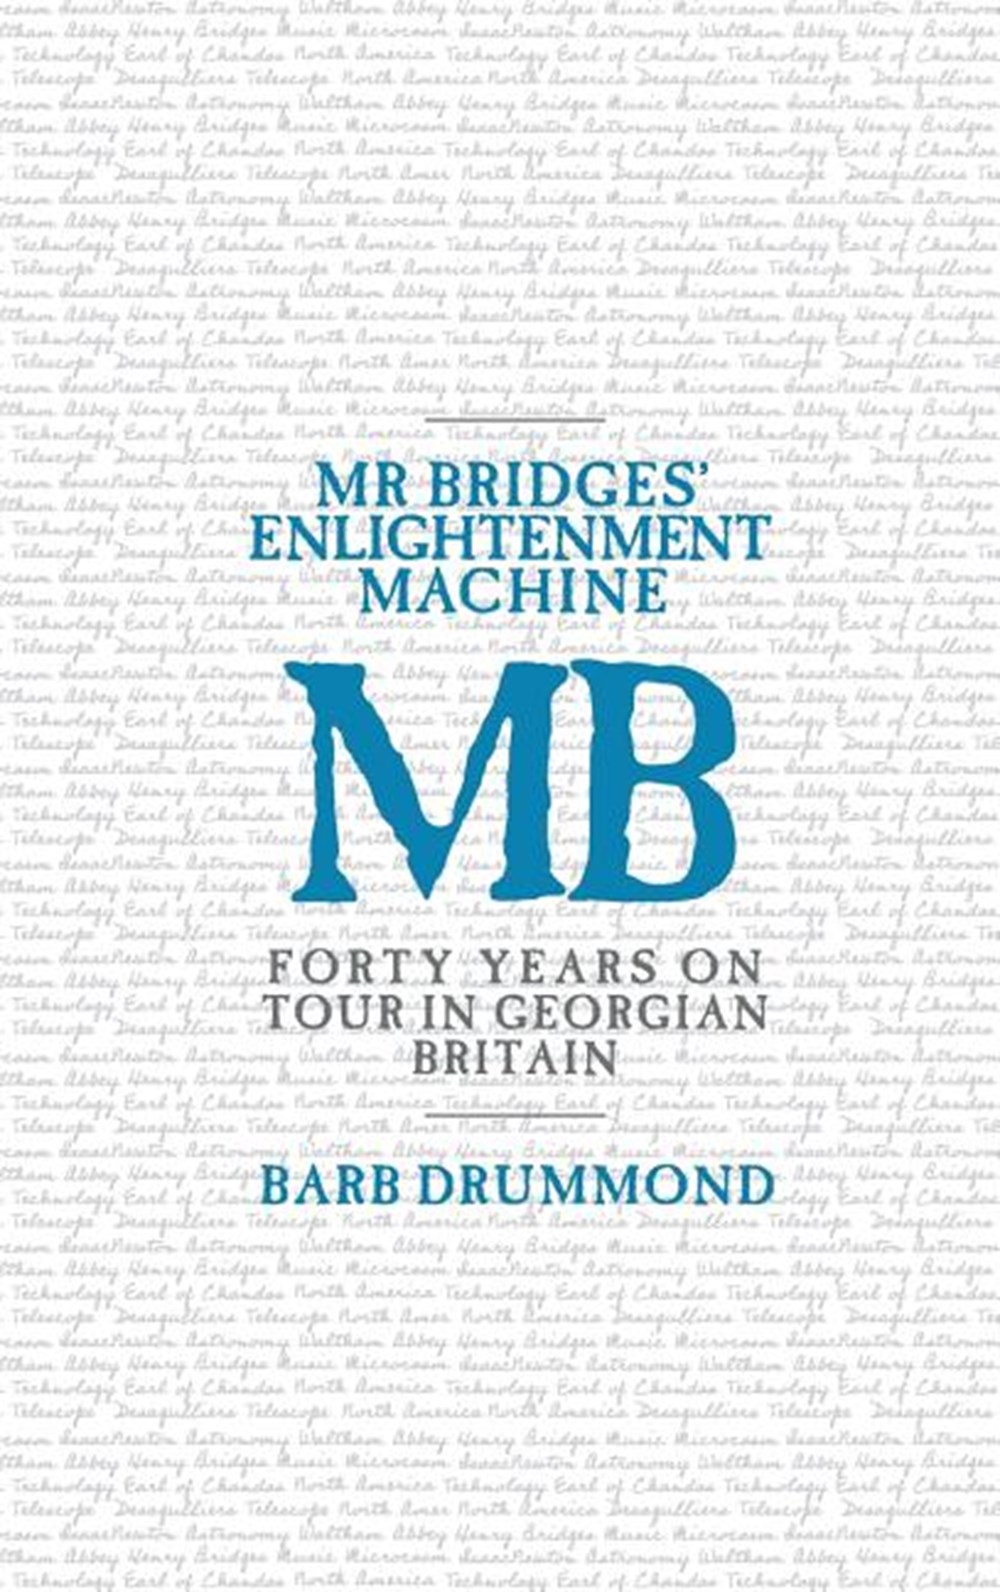 Mr Bridges' Enlightenment Machine Forty Years on Tour in Georgian Britain